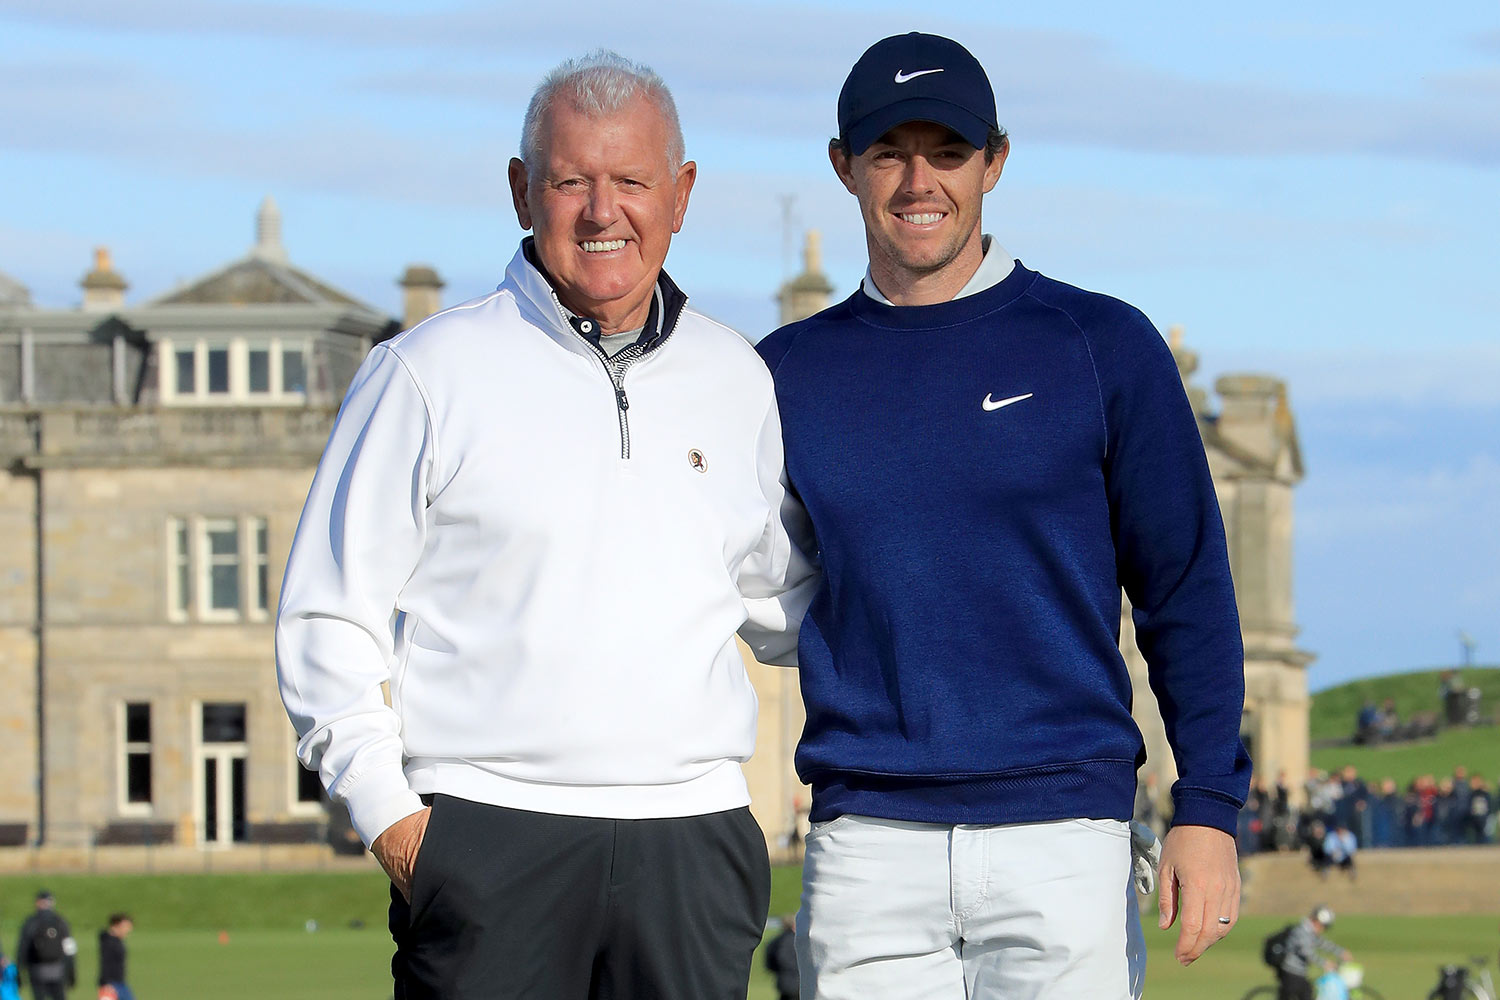 Gerry and Rory McIlroy